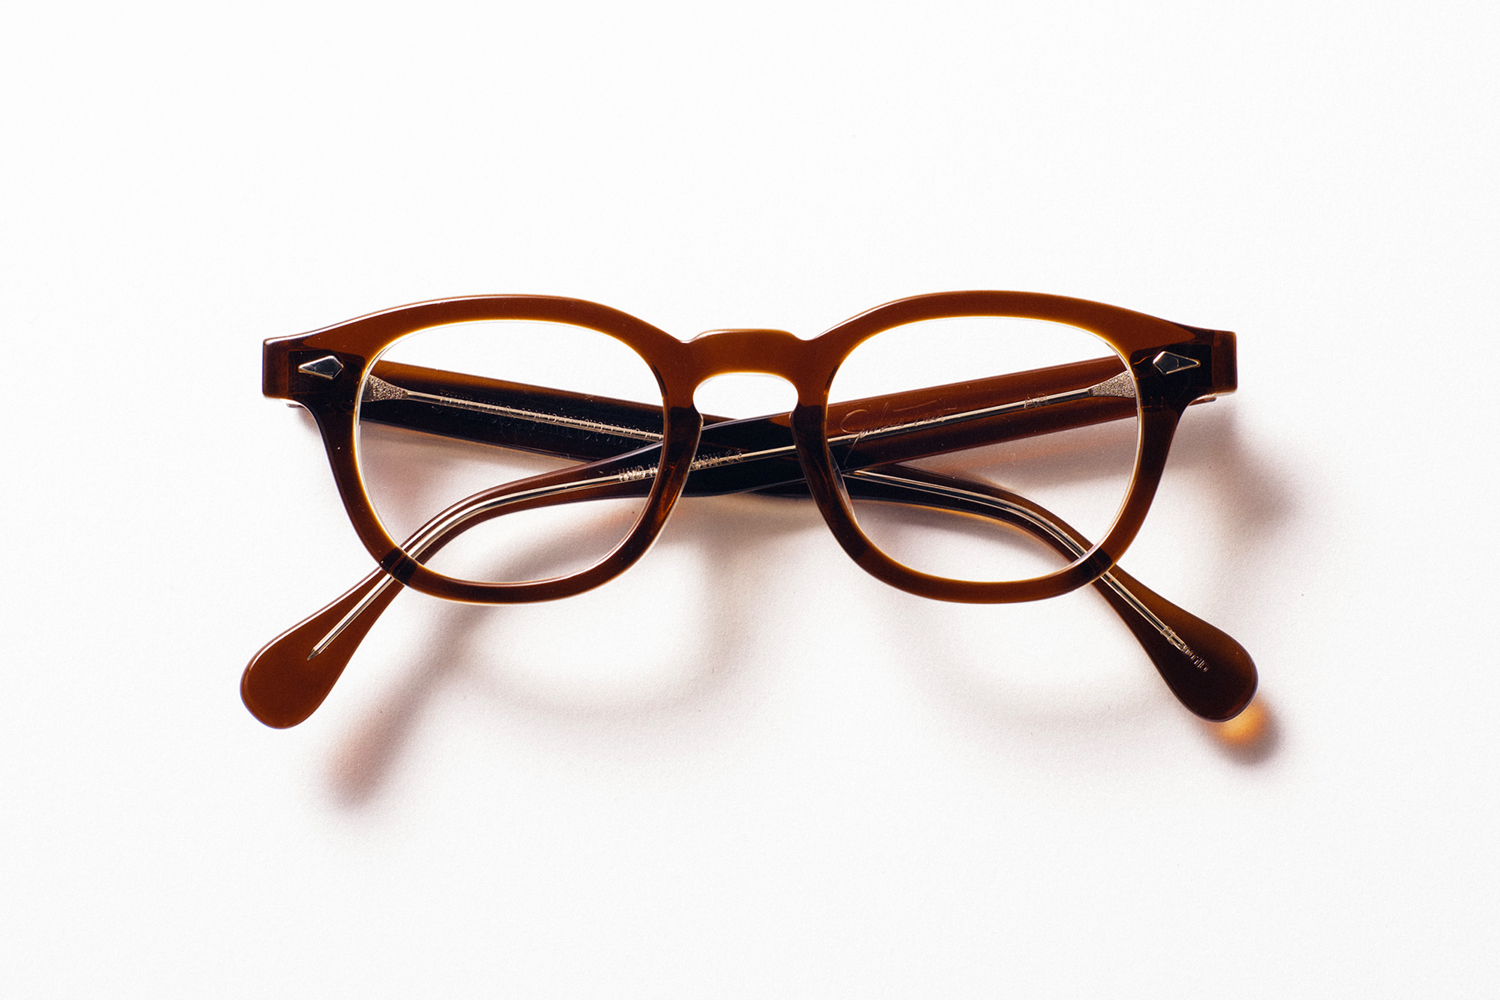 AR 44_Crystal Brown_37000yen